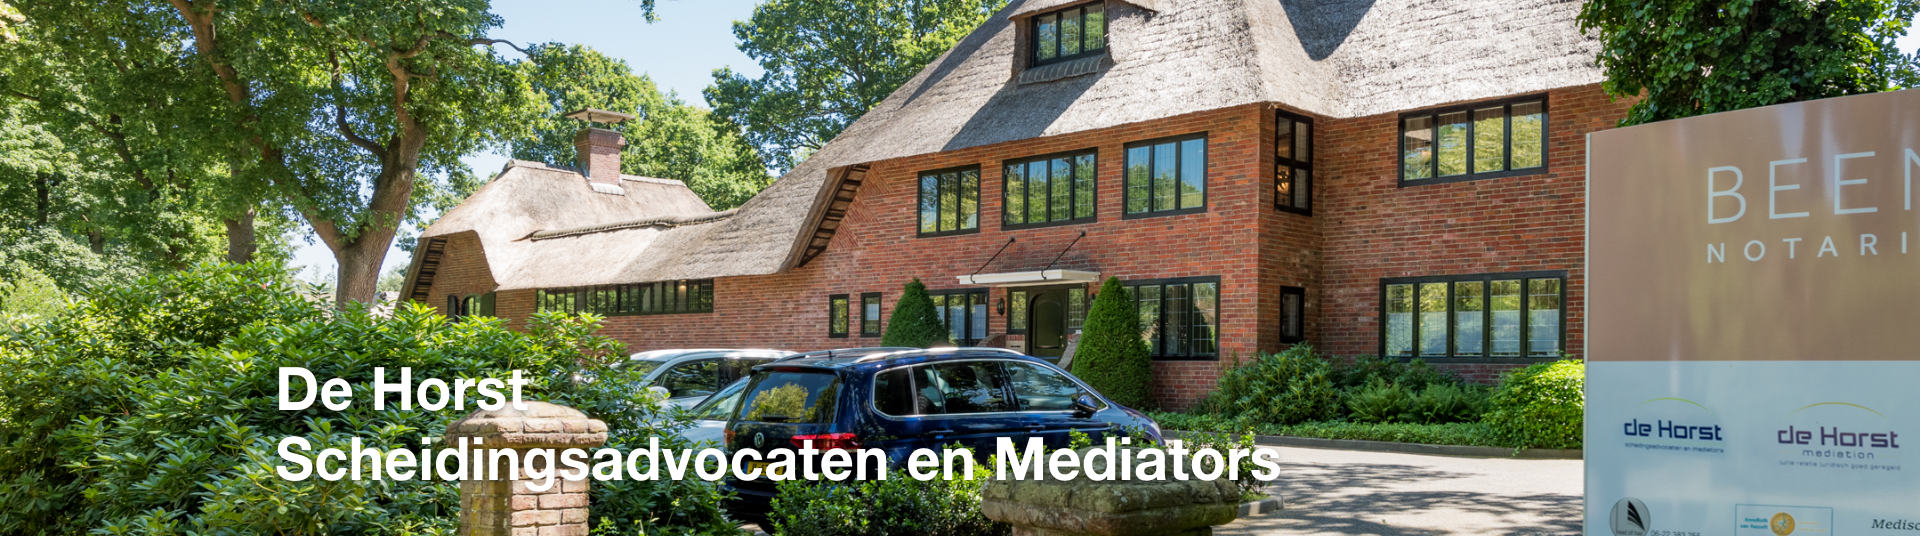 https://dehorstadvocaten.nl/wp-content/uploads/2019/09/Banner-Contact.png